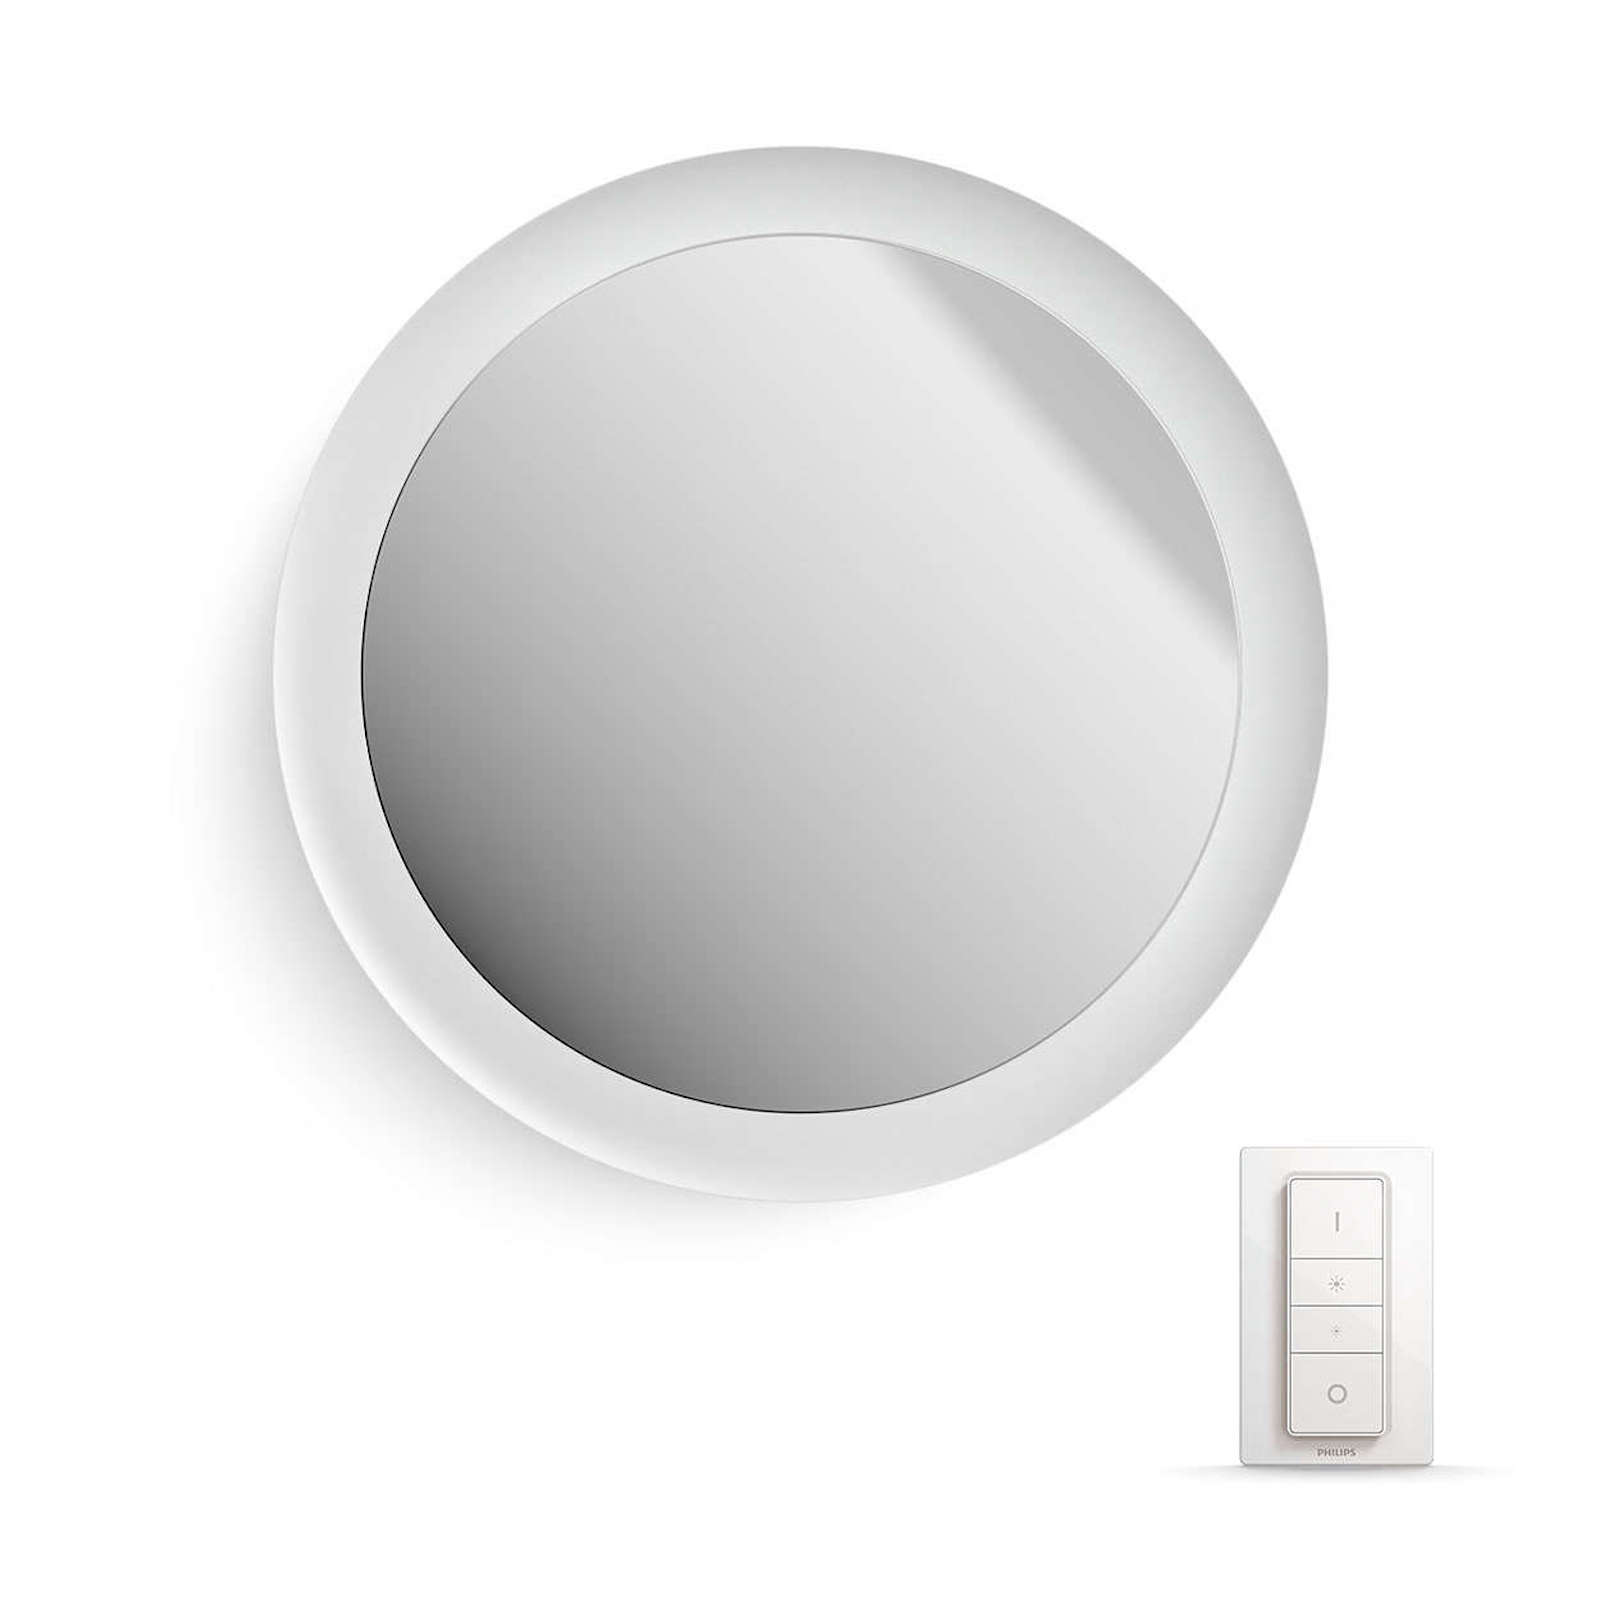 Mirror Lights from Philips Hue 2